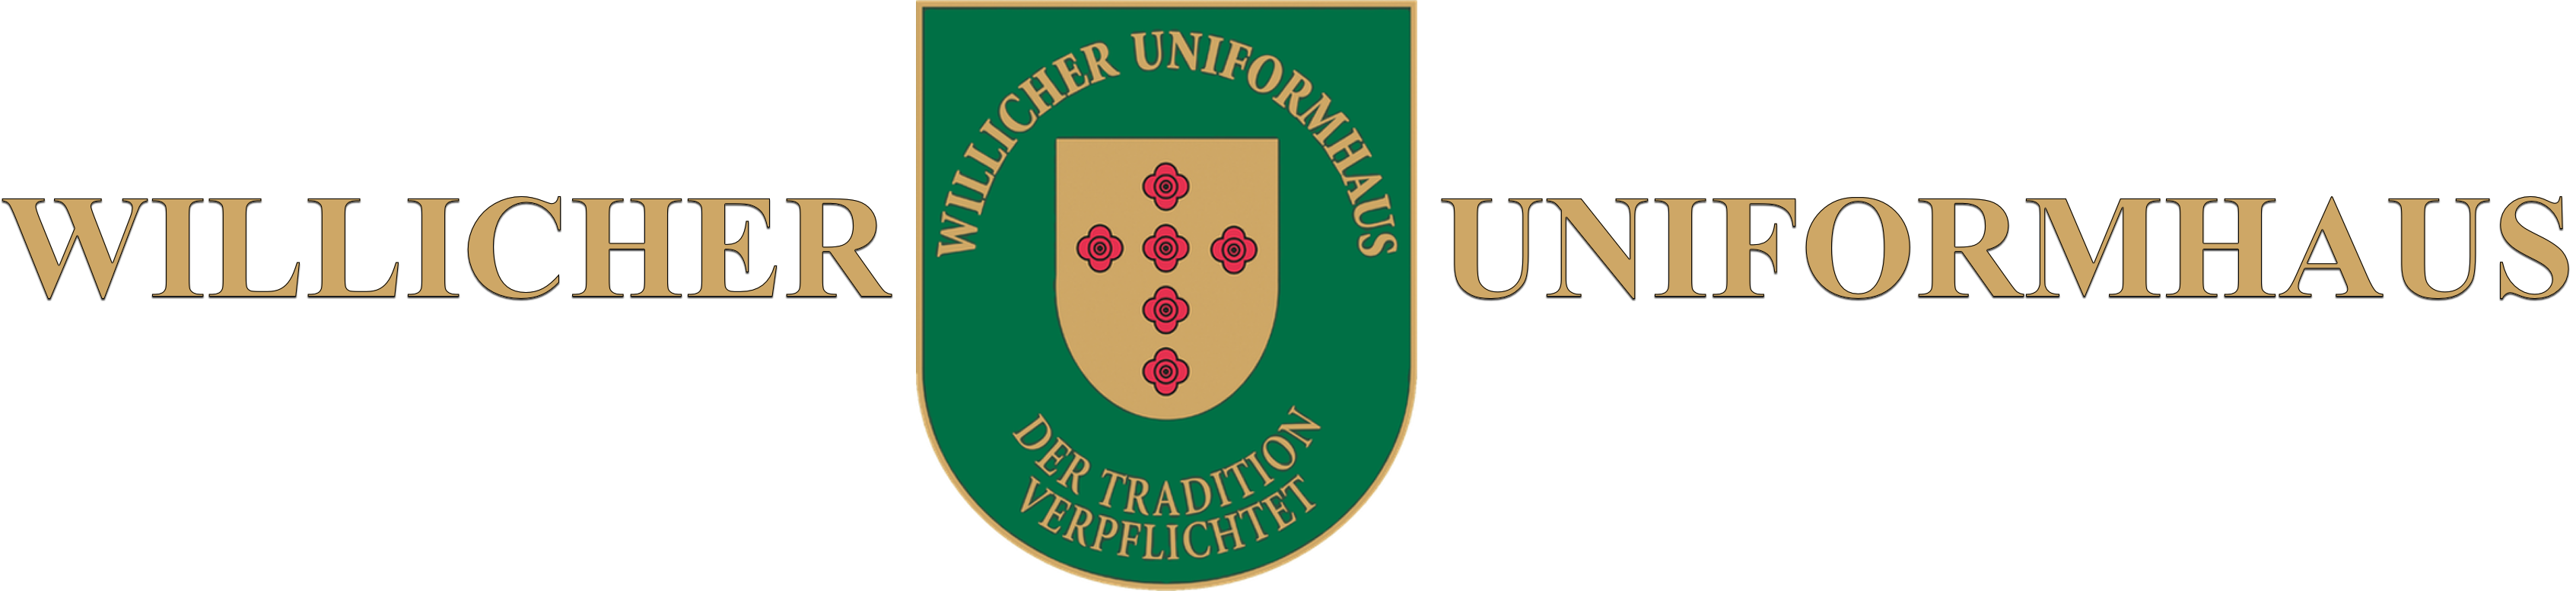 Willicher Uniformhaus